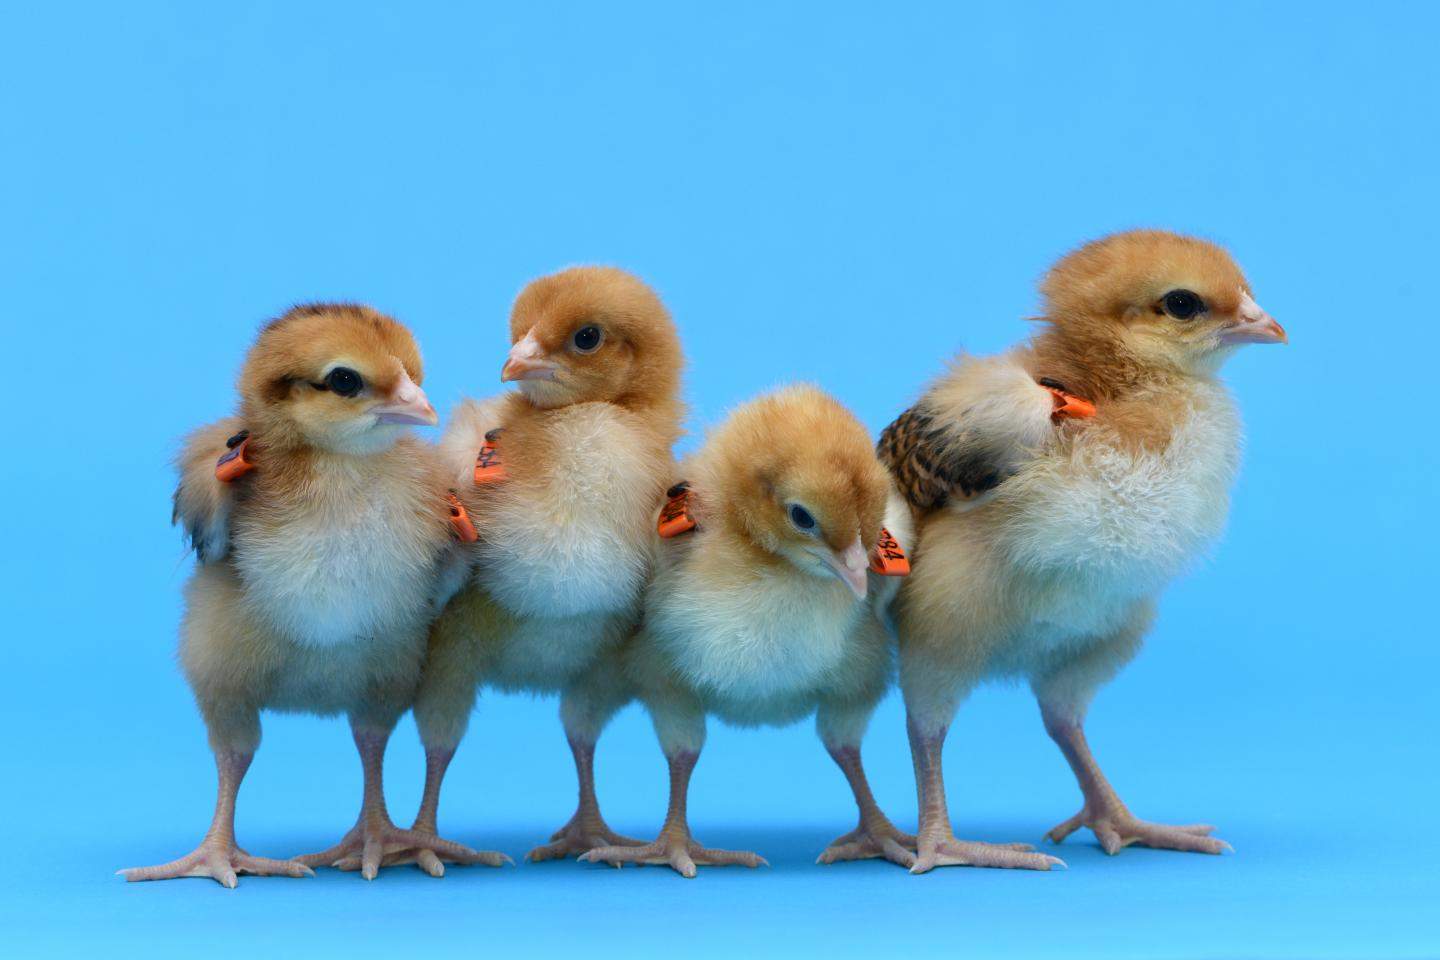 Gene-edited Hens Produced as Surrogates to Save Rare Breeds